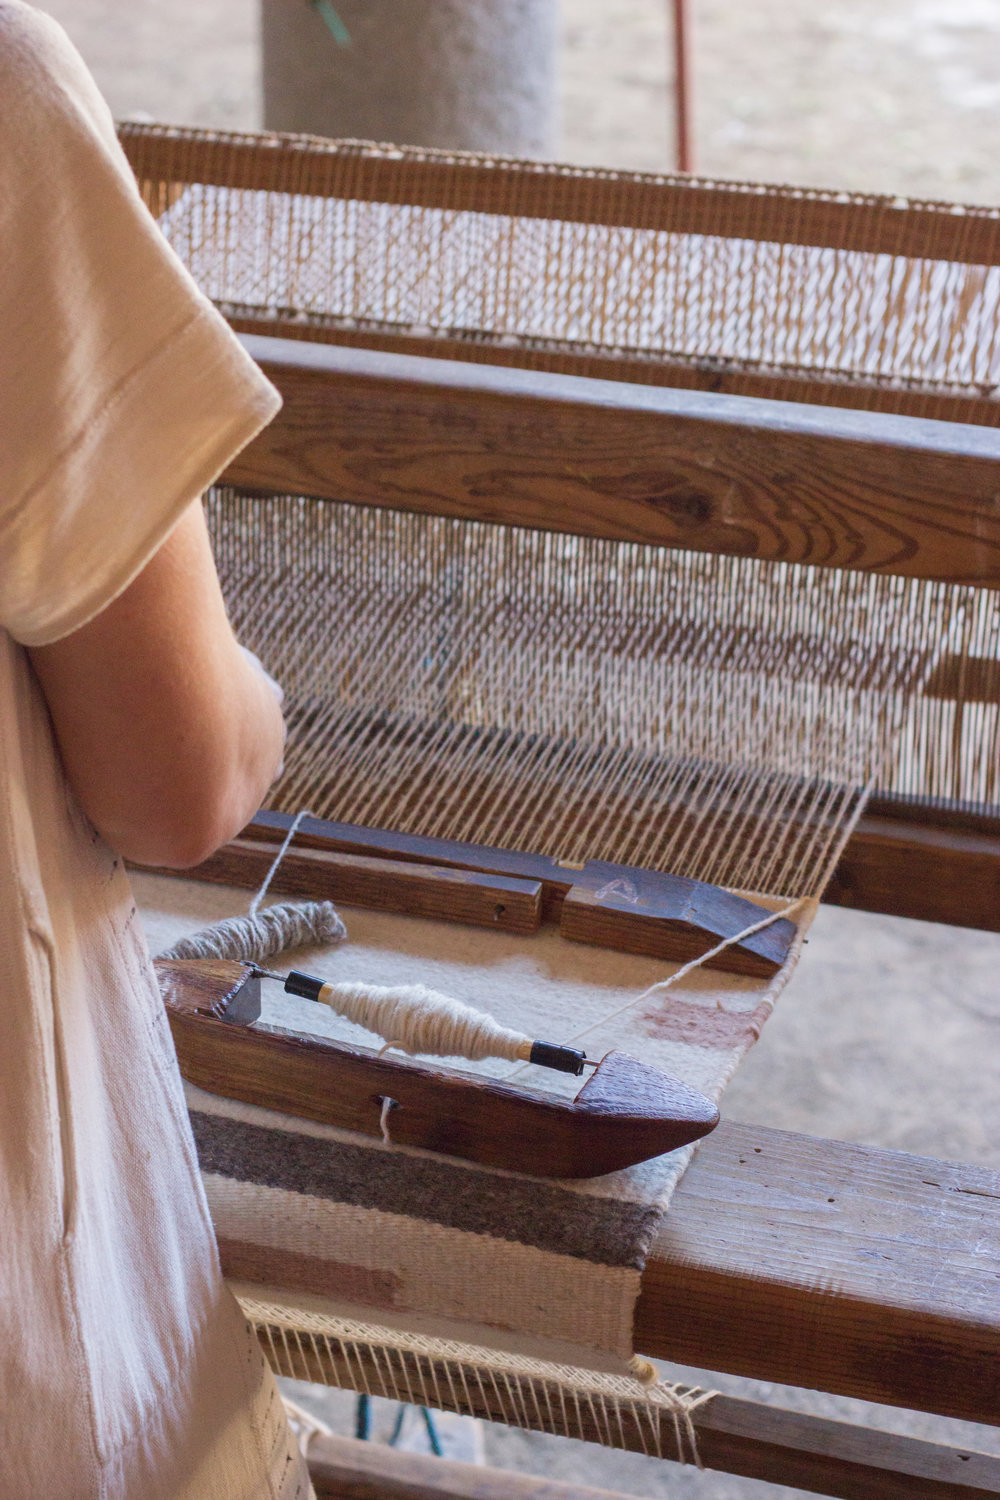 emily katz weaving on a footloom with thread caravan oaxaca